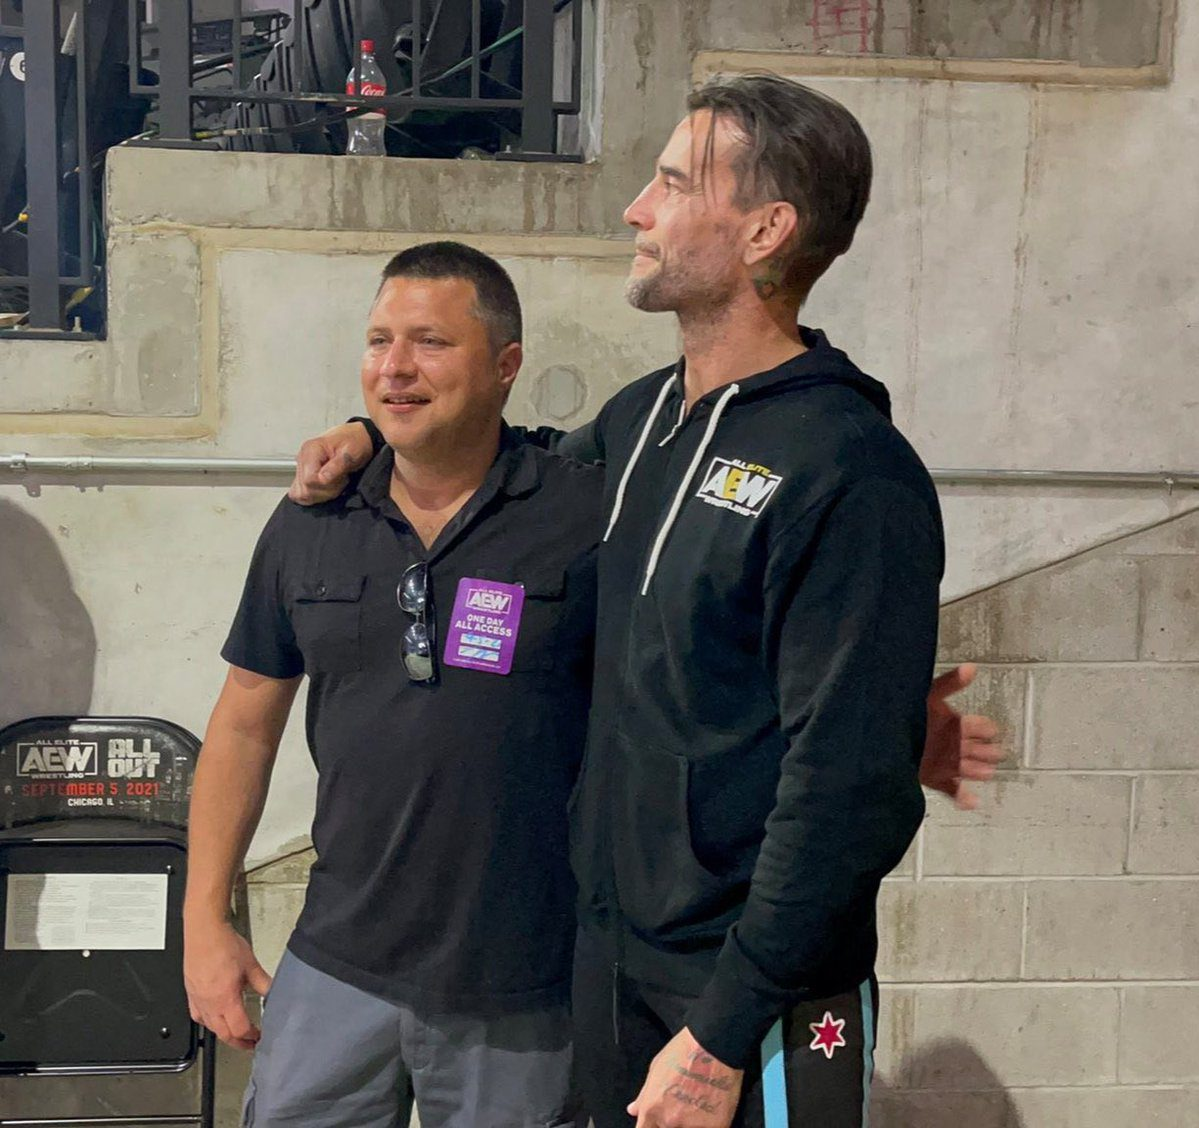 Crying CM Punk Guy met CM Punk backstage at AEW All Out 2021 PPV